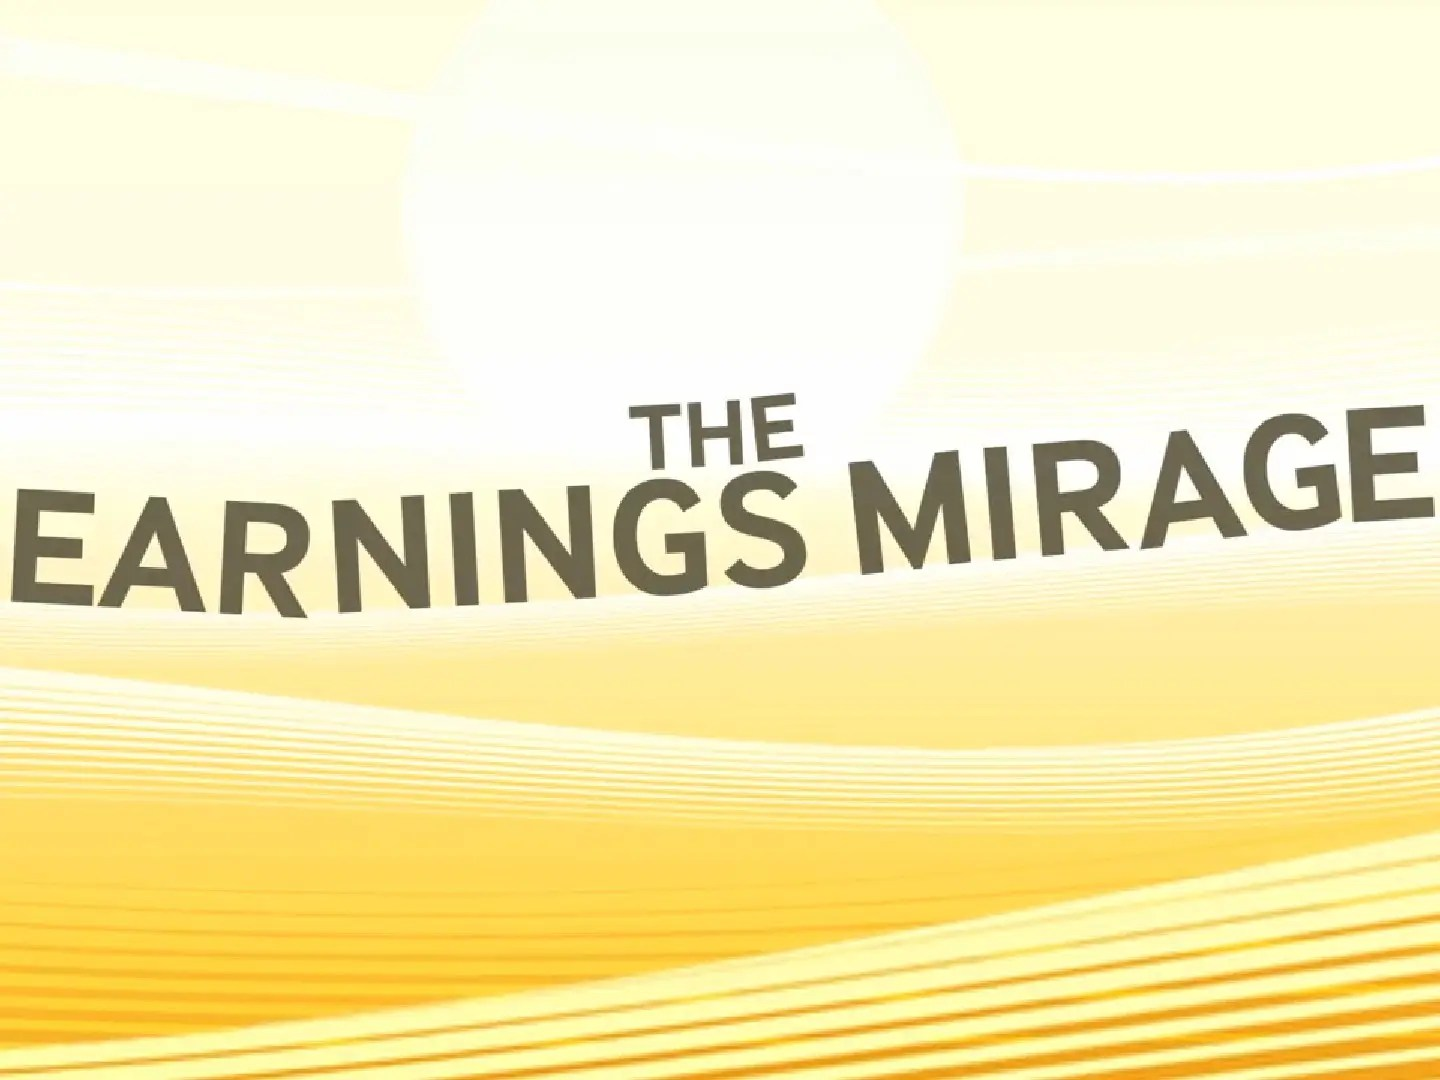 The irony of low interest rates is that they helped create the earnings mirage.